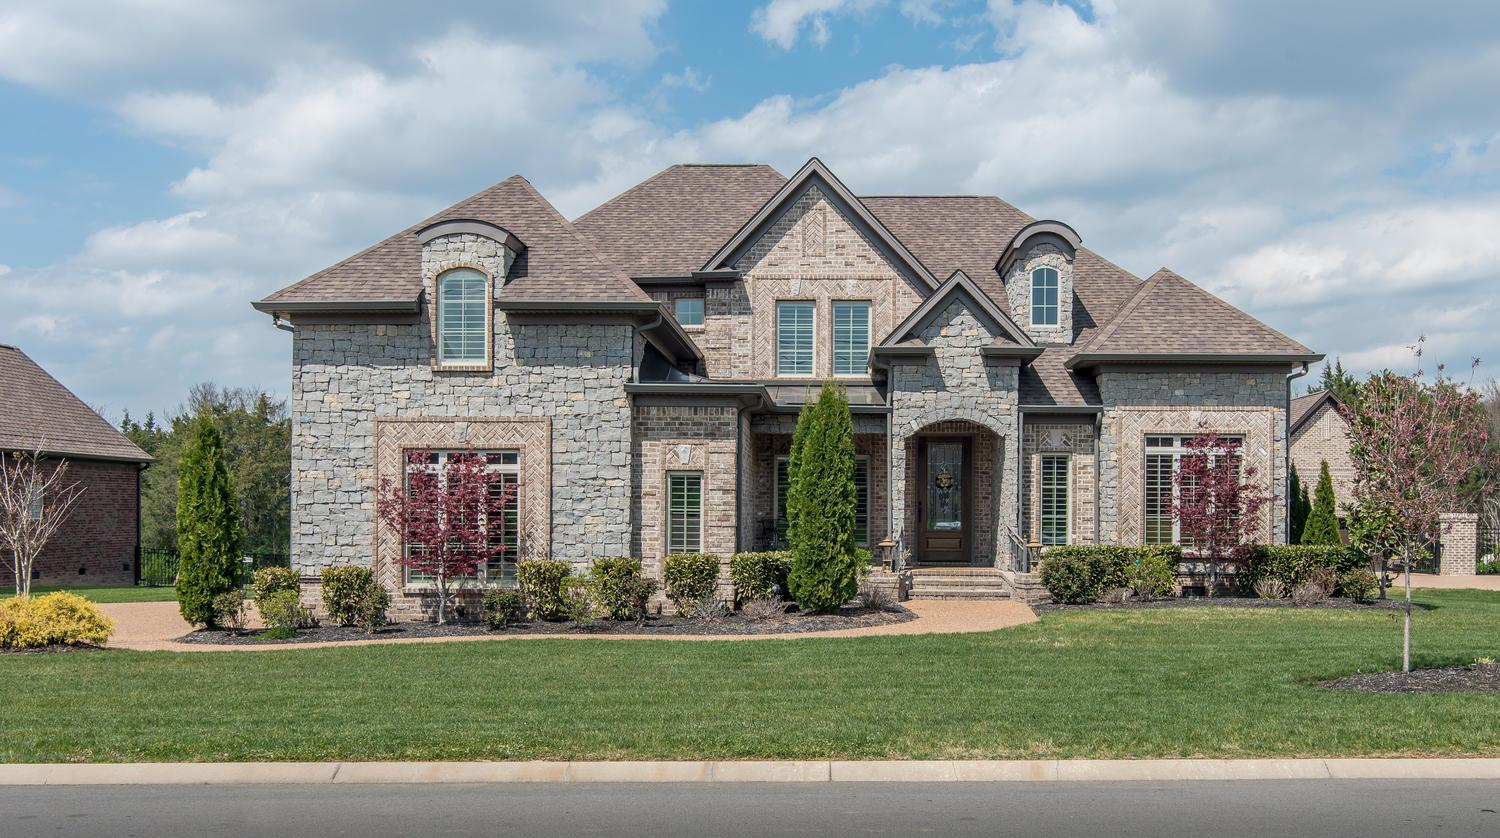 1118 Garrett Way, Mount Juliet, Tennessee